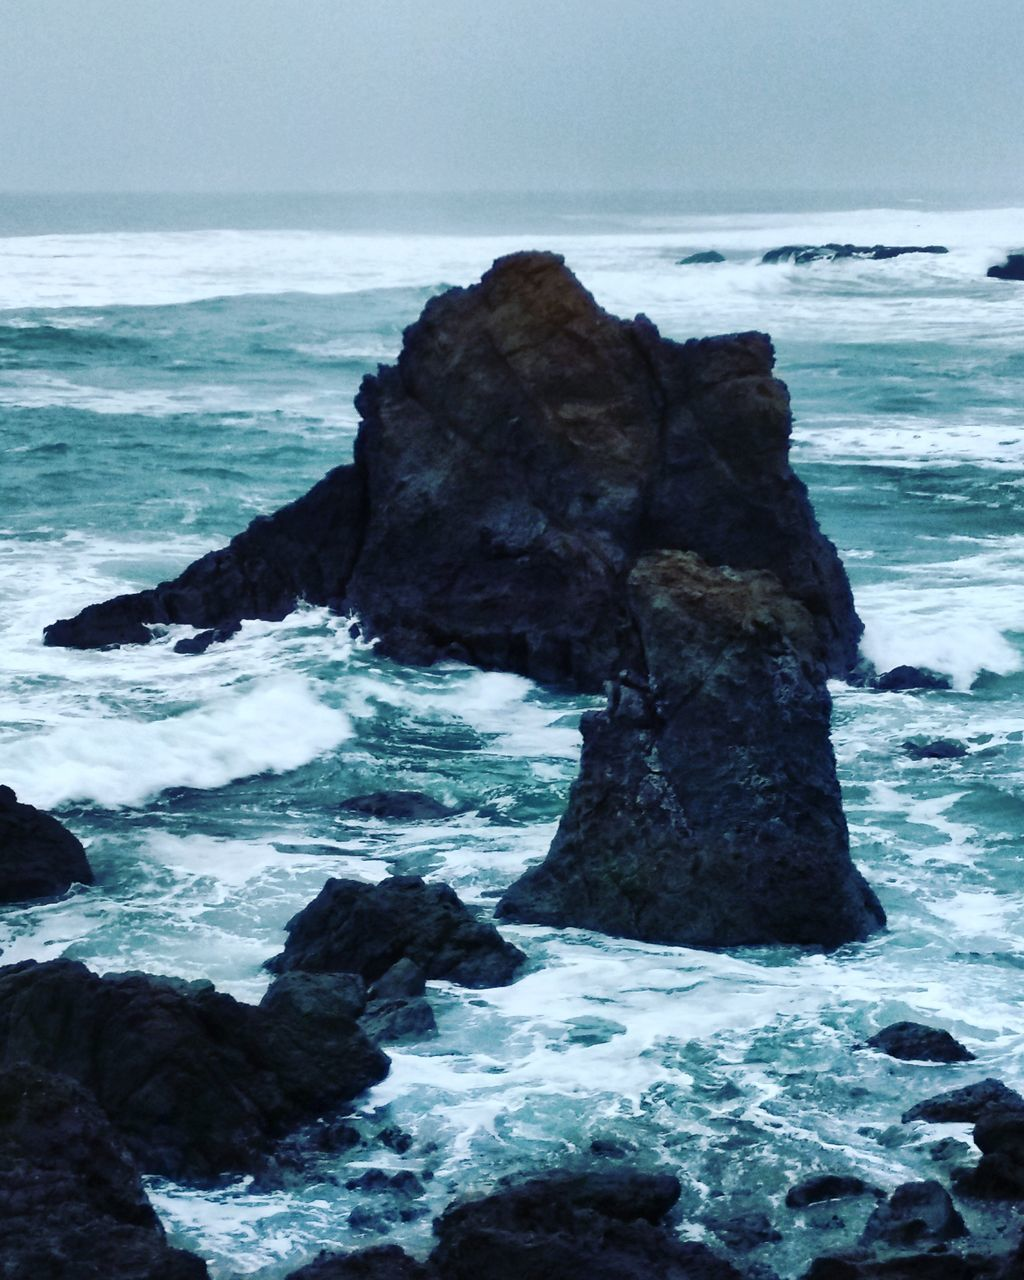 sea, rock - object, nature, rock formation, water, beauty in nature, rock, horizon over water, wave, scenics, tranquil scene, tranquility, no people, beach, outdoors, sky, day, iceberg